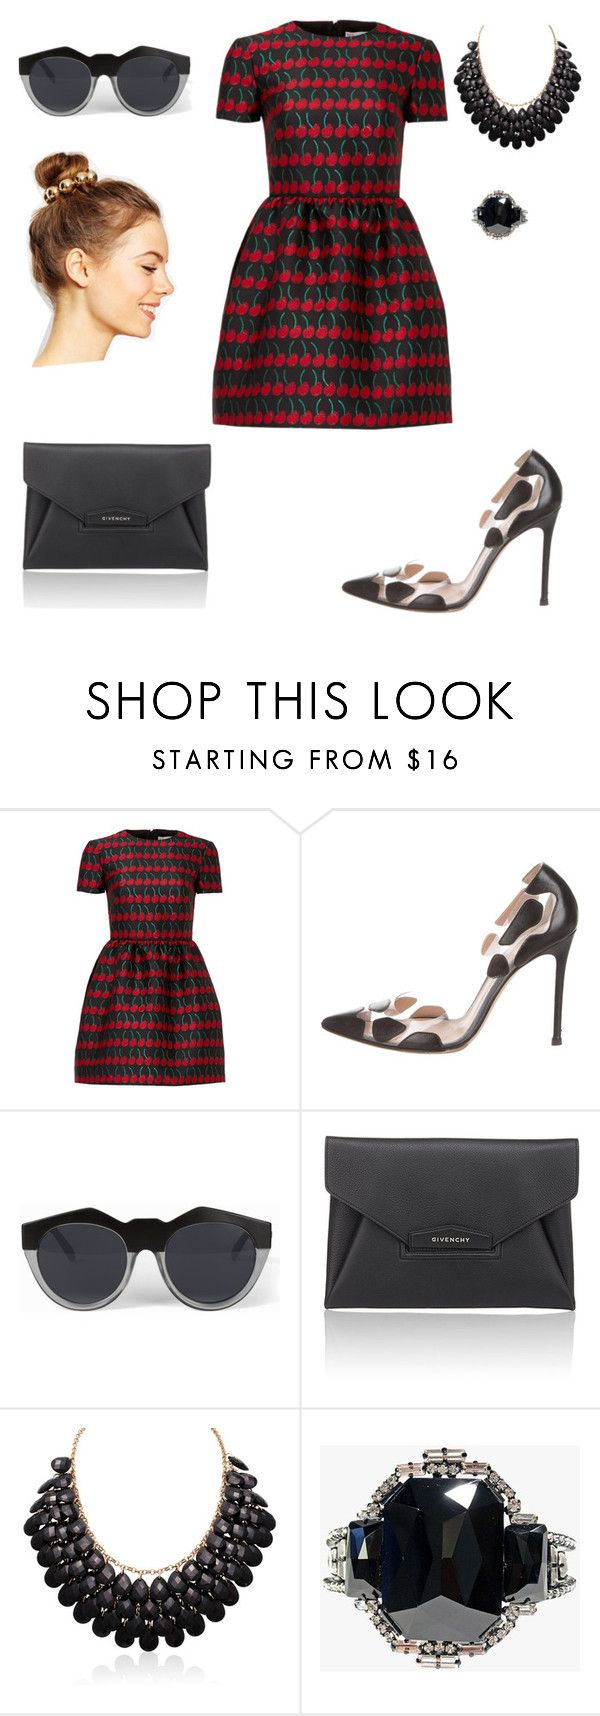 """Cherry bomb"" by heiressbehavior ❤ liked on Polyvore featuring RED Valentino, Gianvito Rossi, Le Specs, Givenchy, Helene Zubeldia and ASOS"